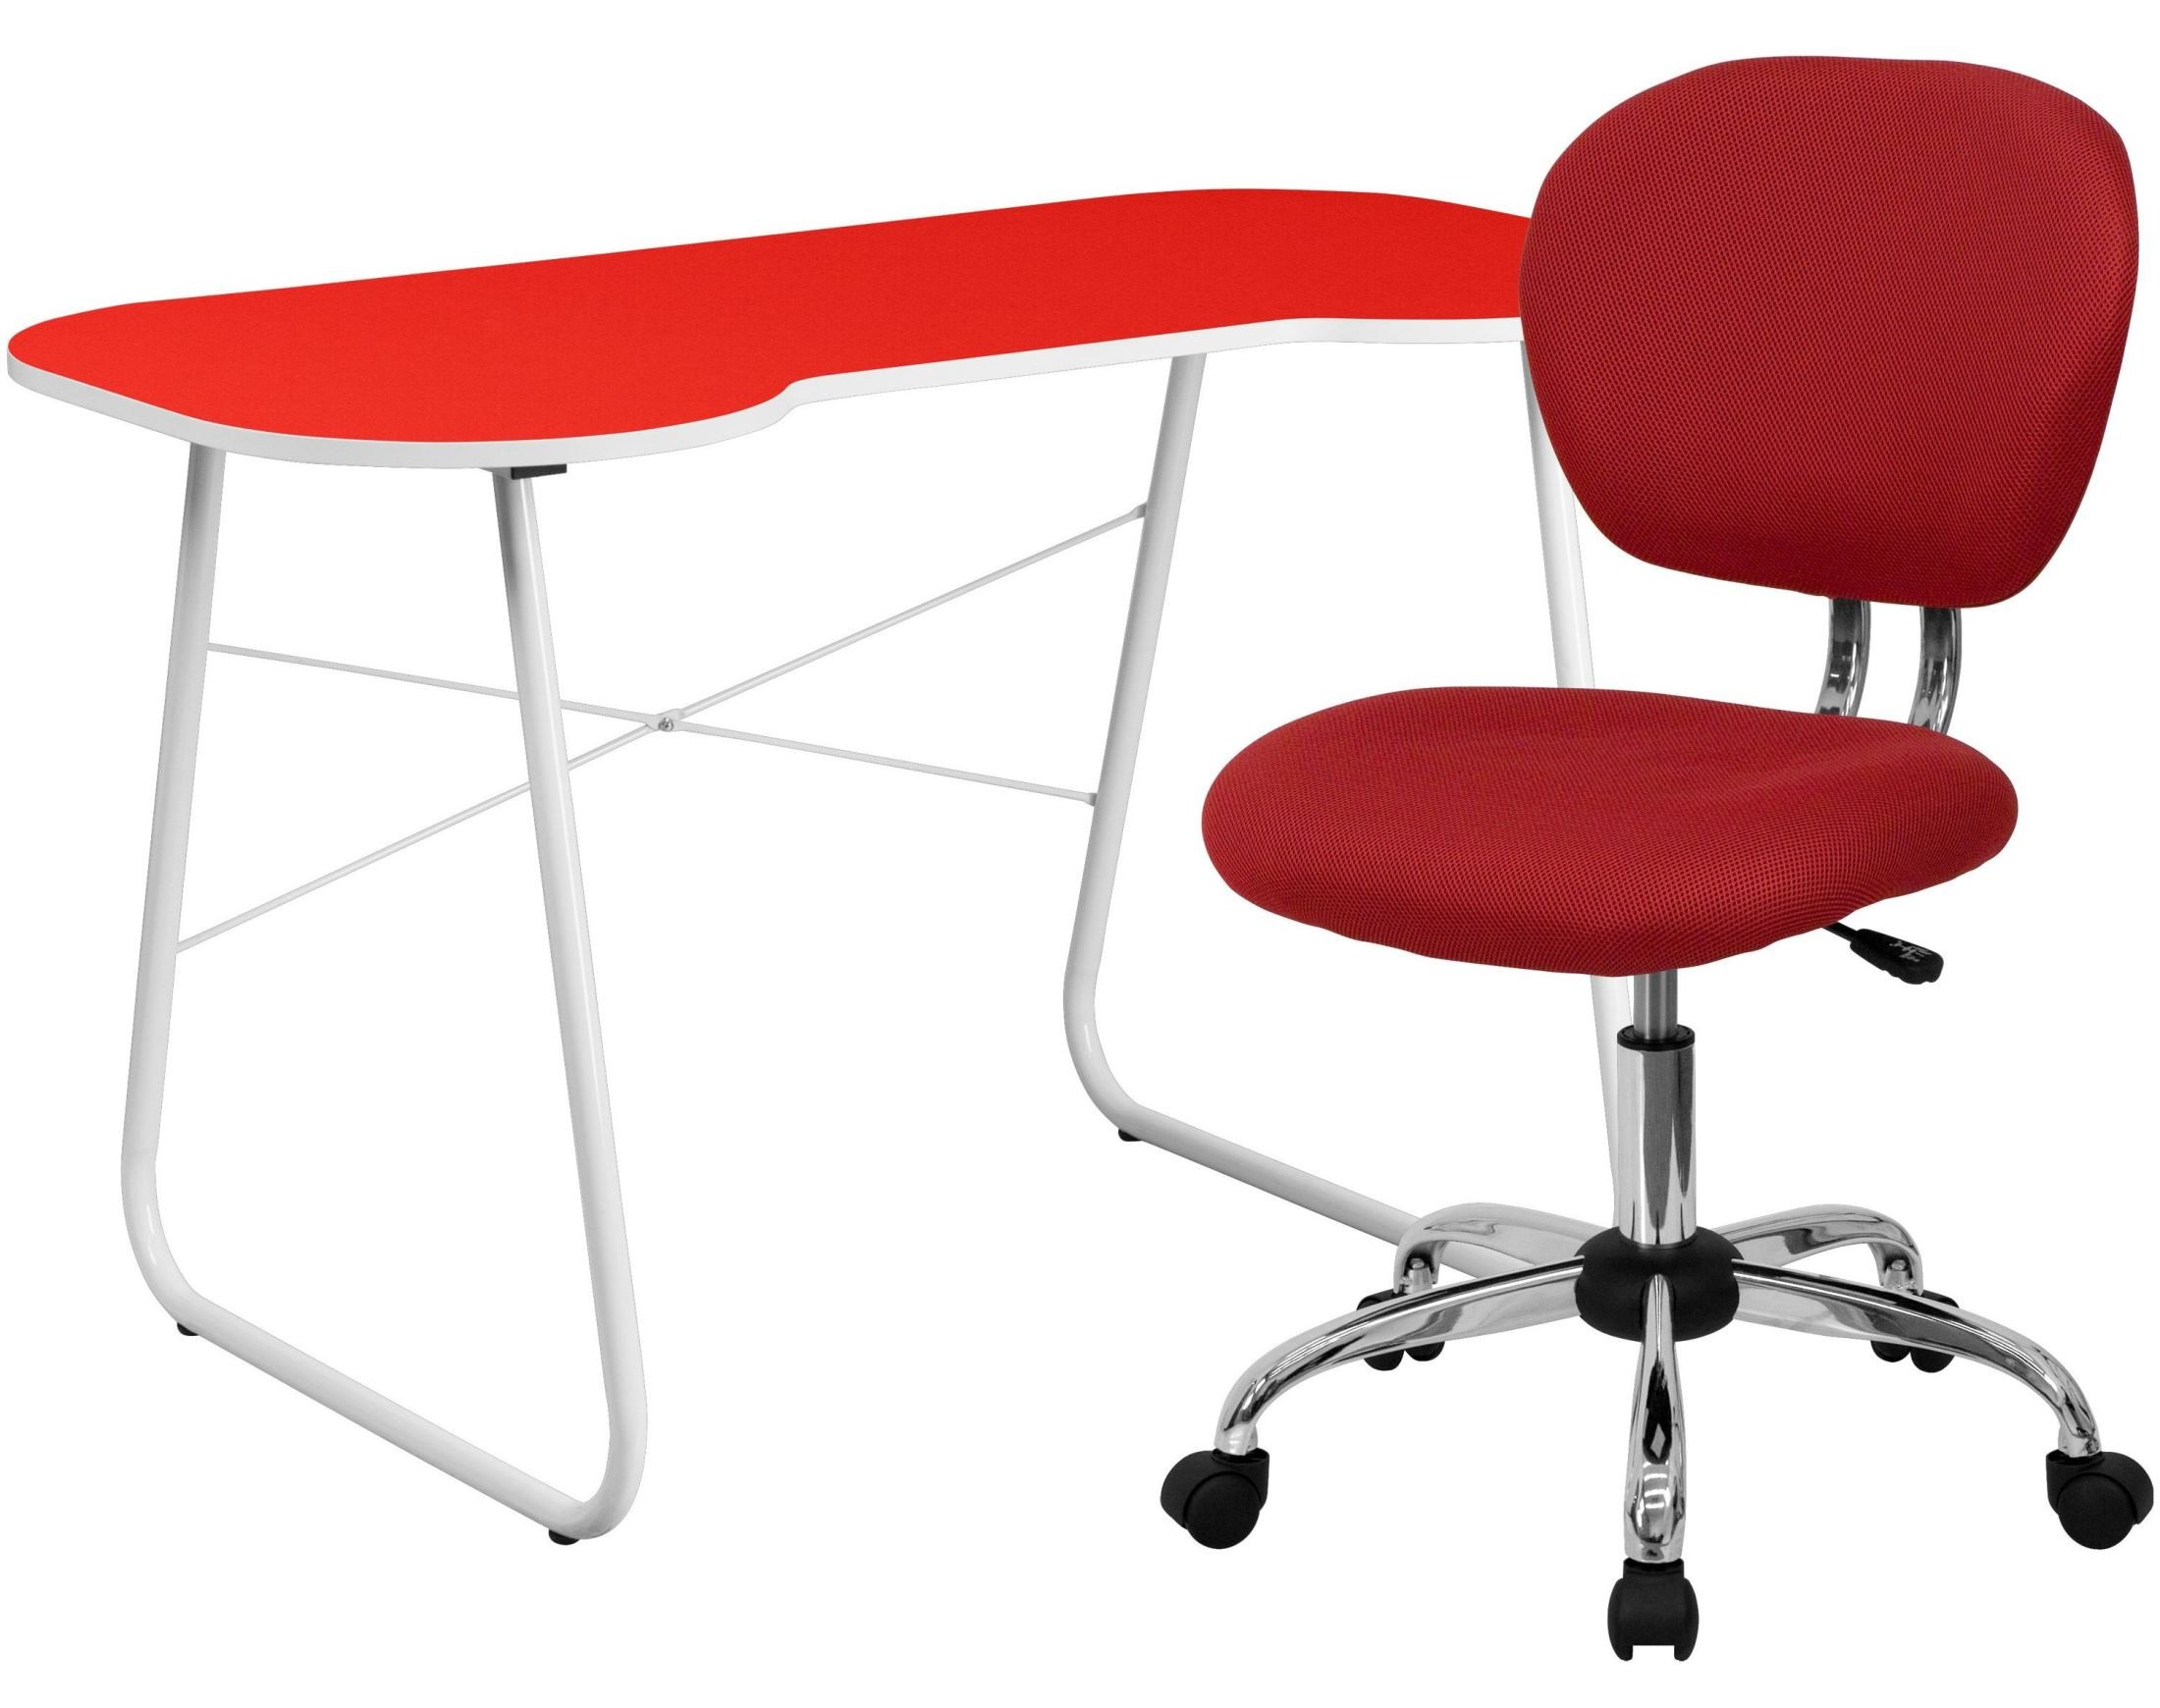 red computer desk and mesh chair from renegade nan 16 gg coleman